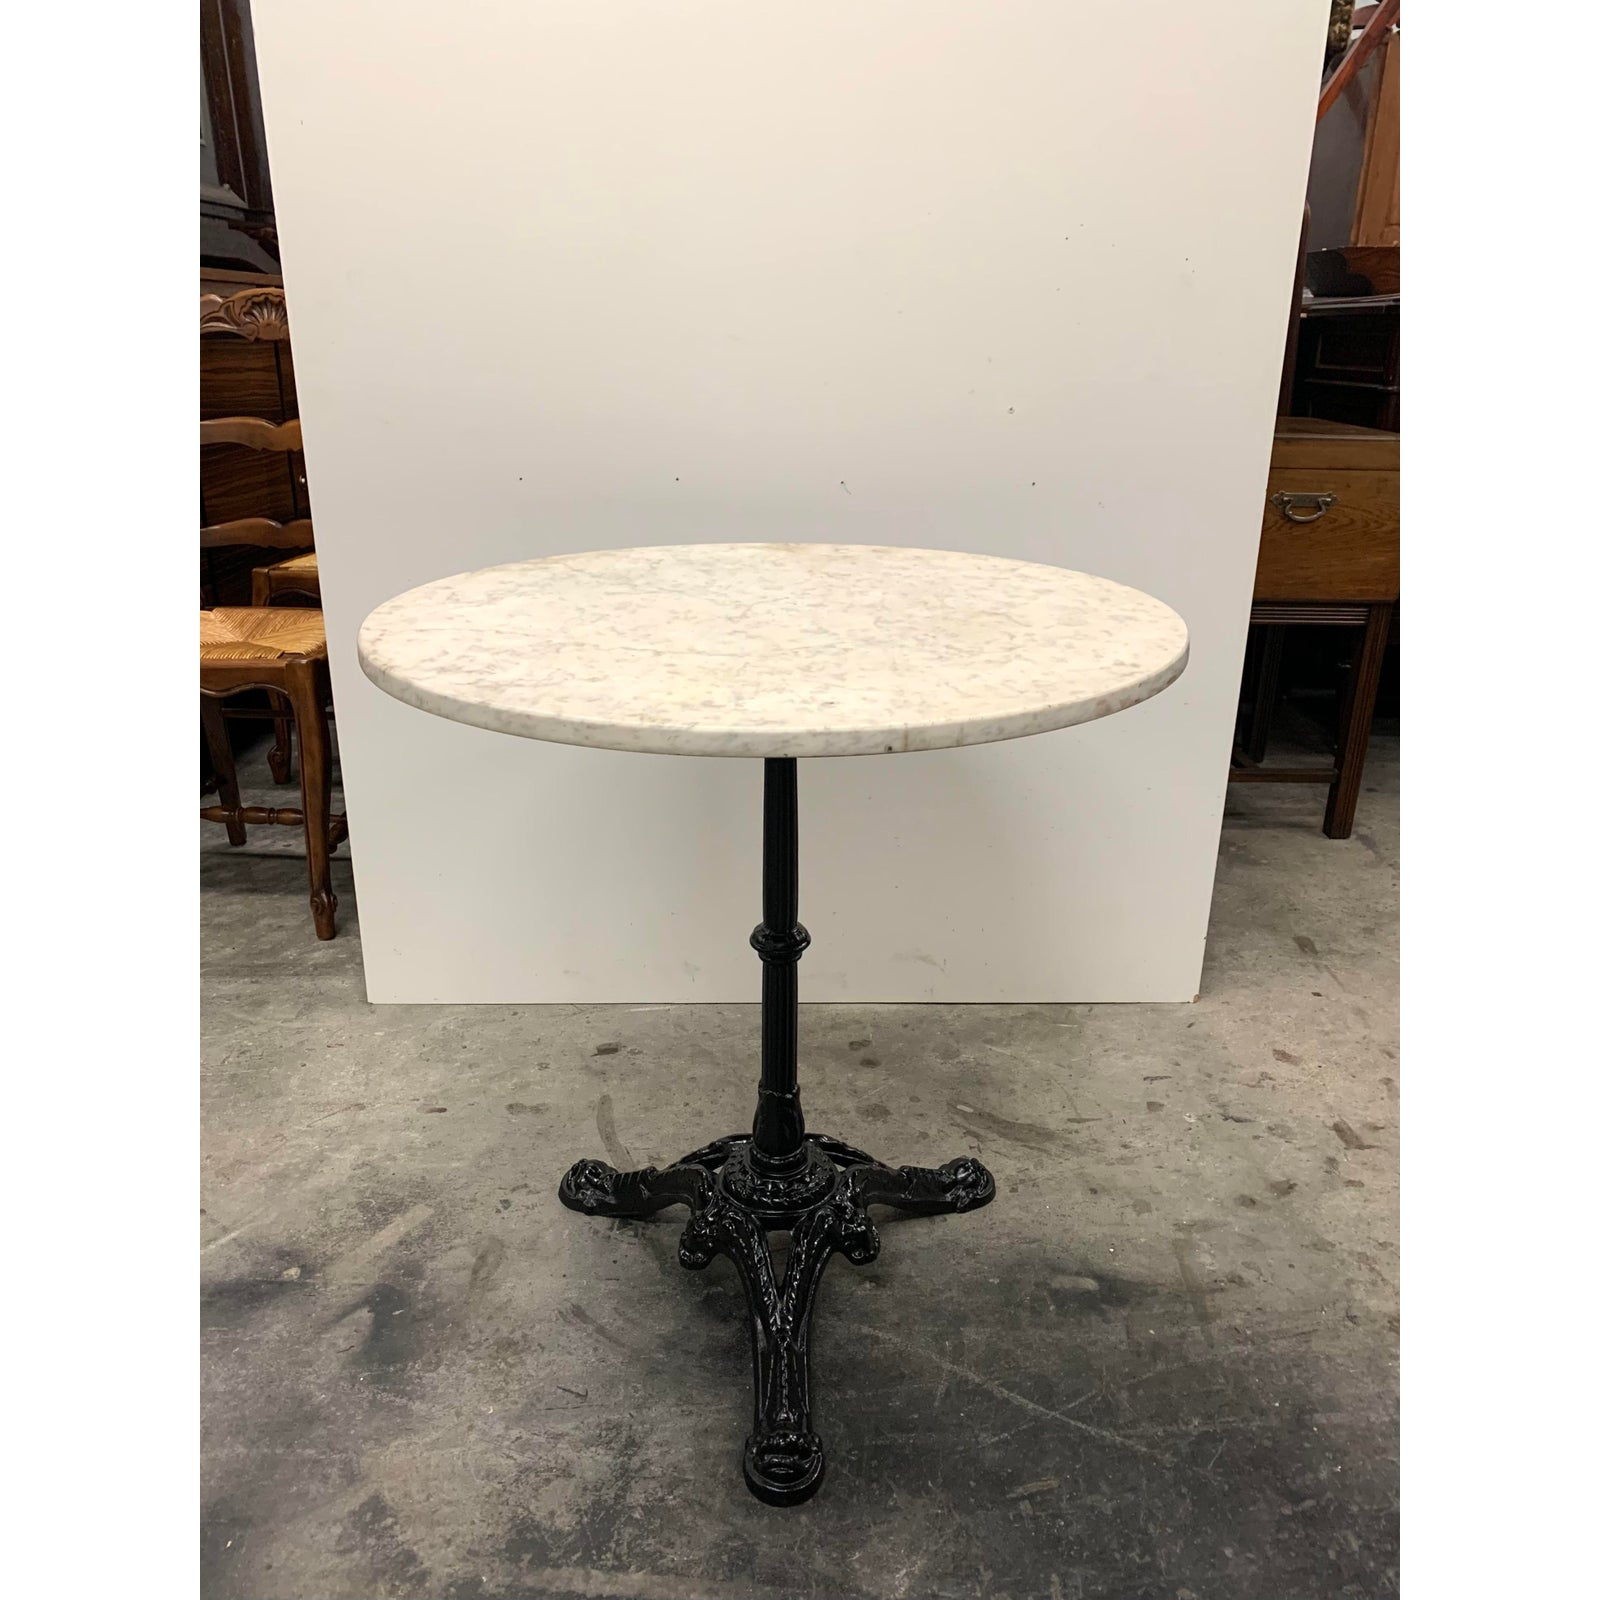 1930s Vintage French Art Deco Cast Iron Marble Top Bistro Dining Table French Art Deco